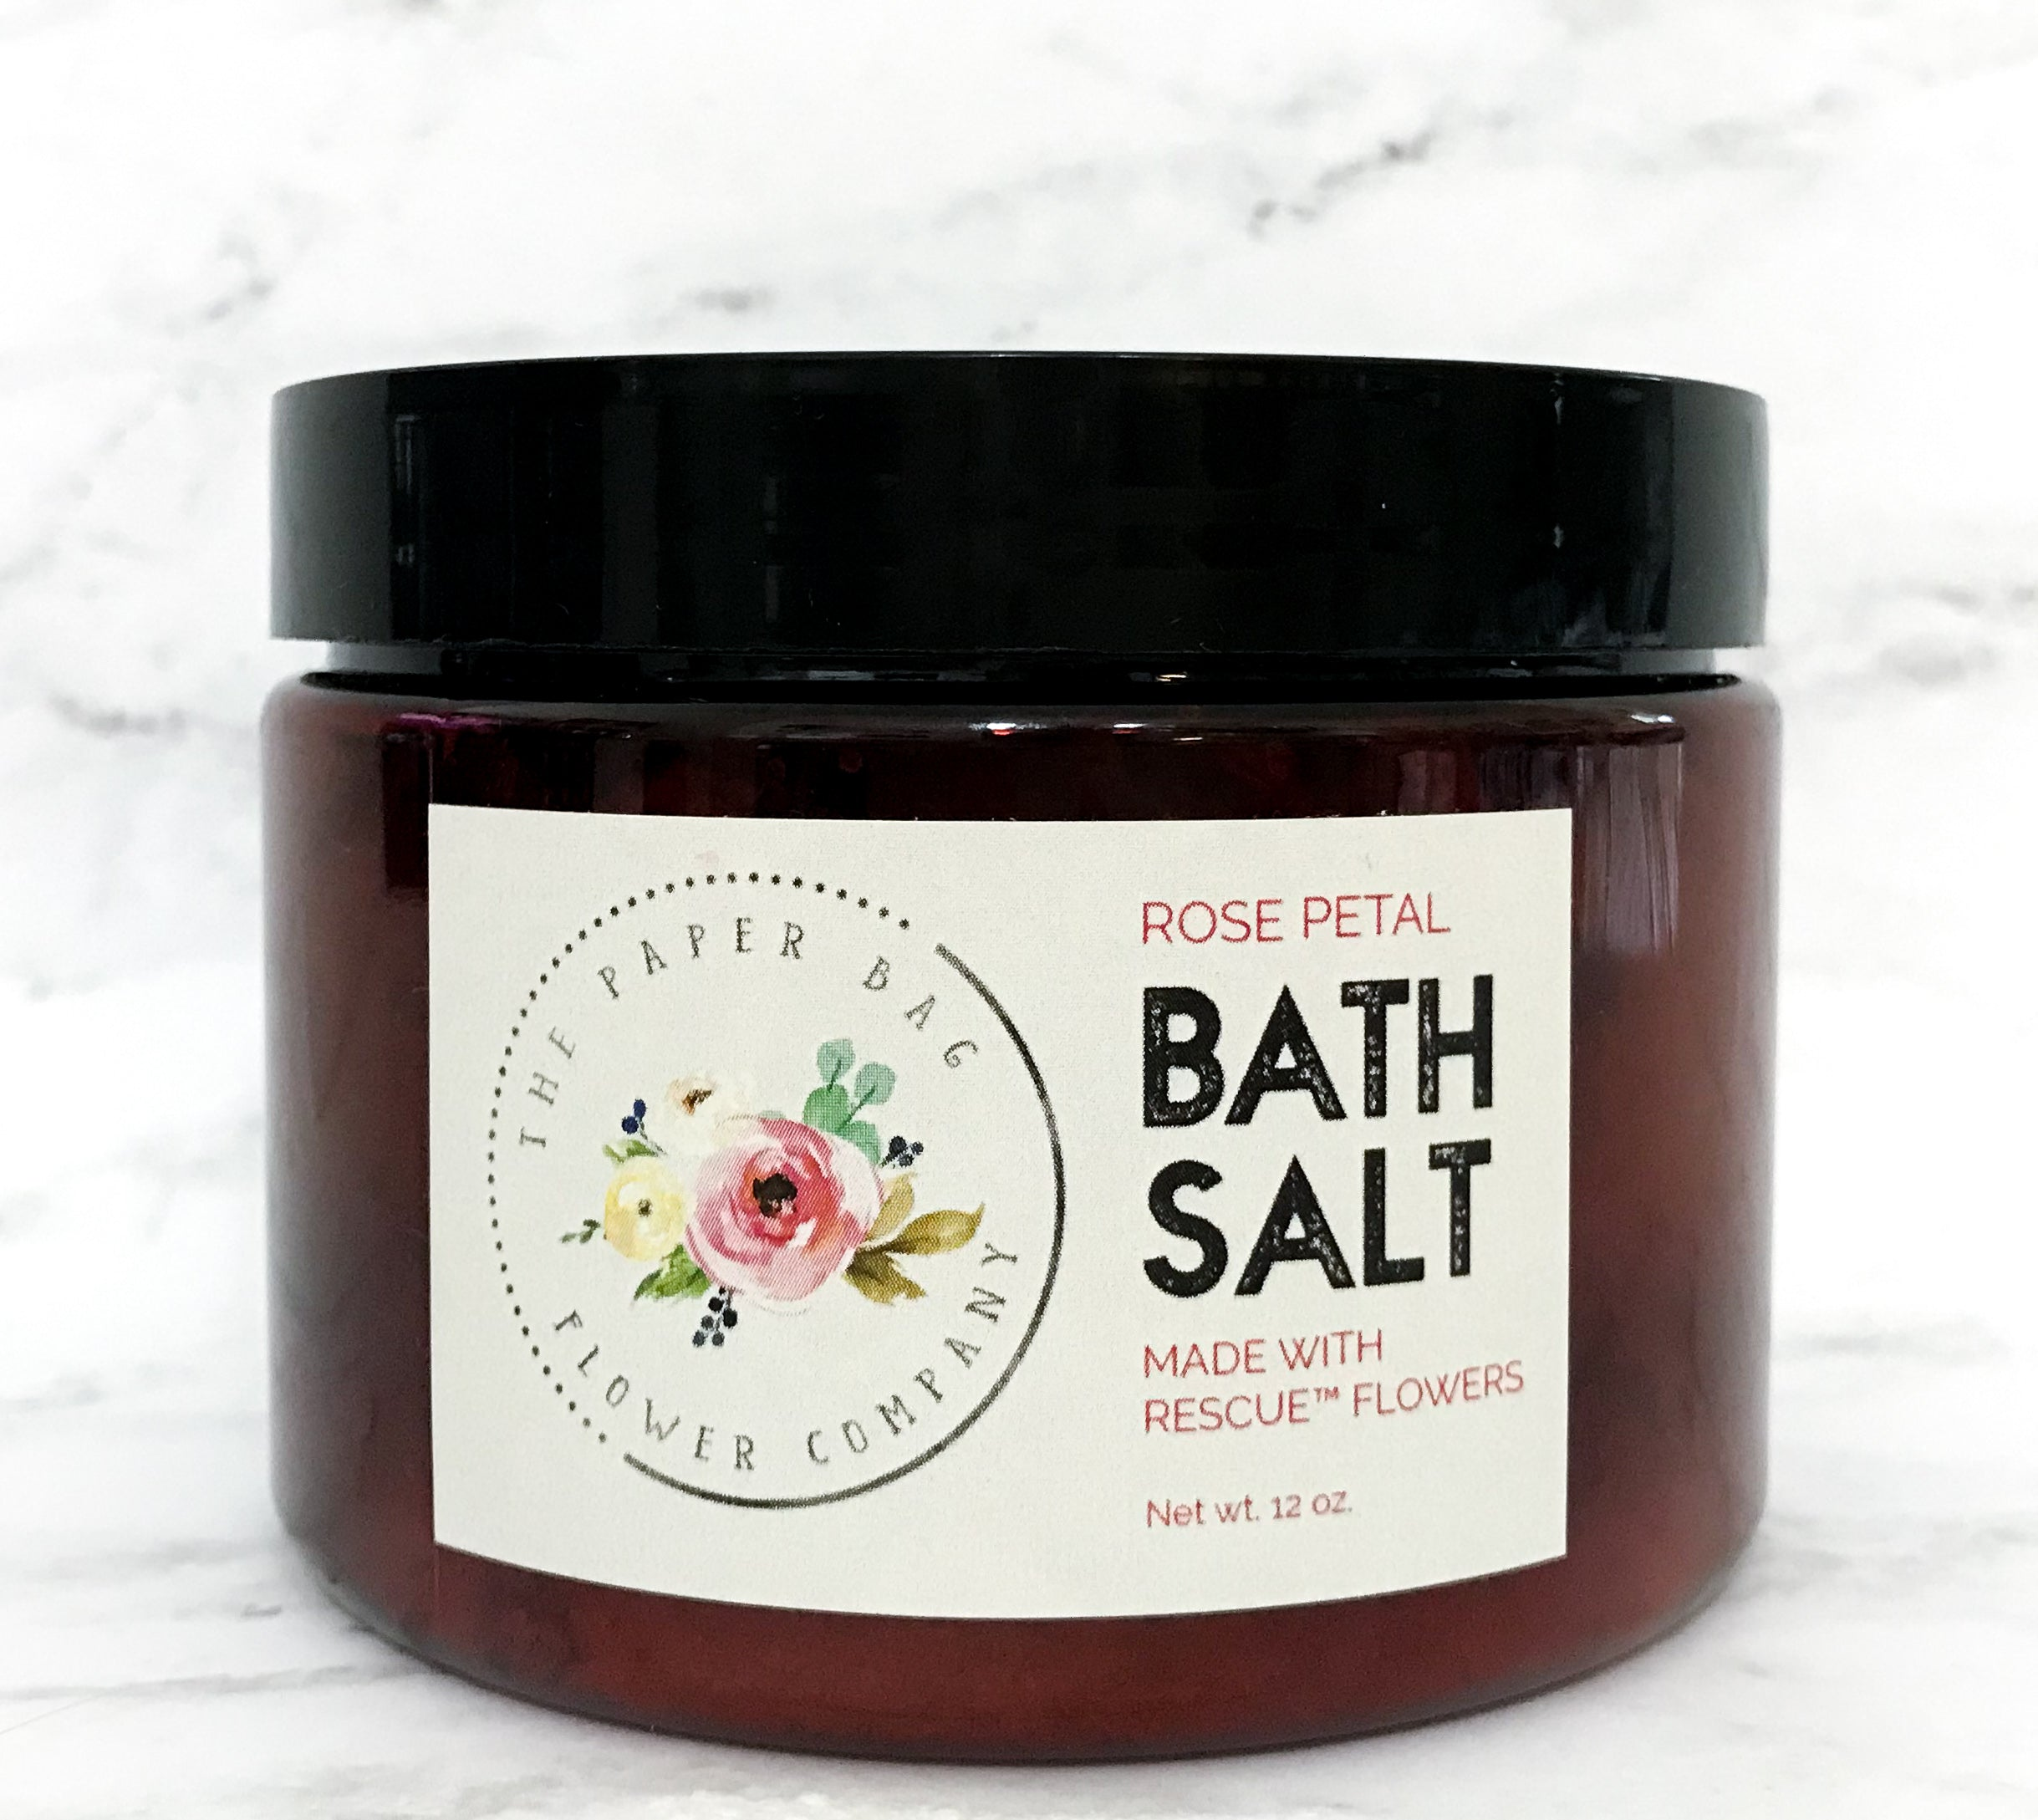 12 oz. Rose Petal Bath Salt